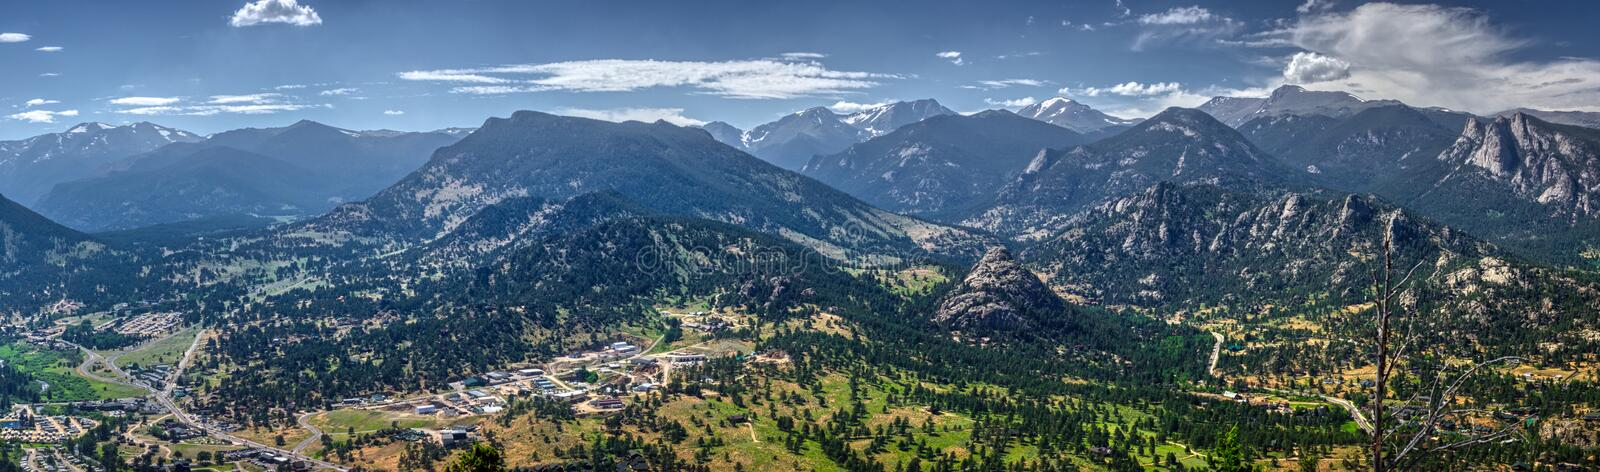 Estes Park Aerial Panorama. Scenic valley and snow-covered peaks under a blue sky with clouds in Estes Park, Colorado near the Rocky Mountain National Park royalty free stock photos